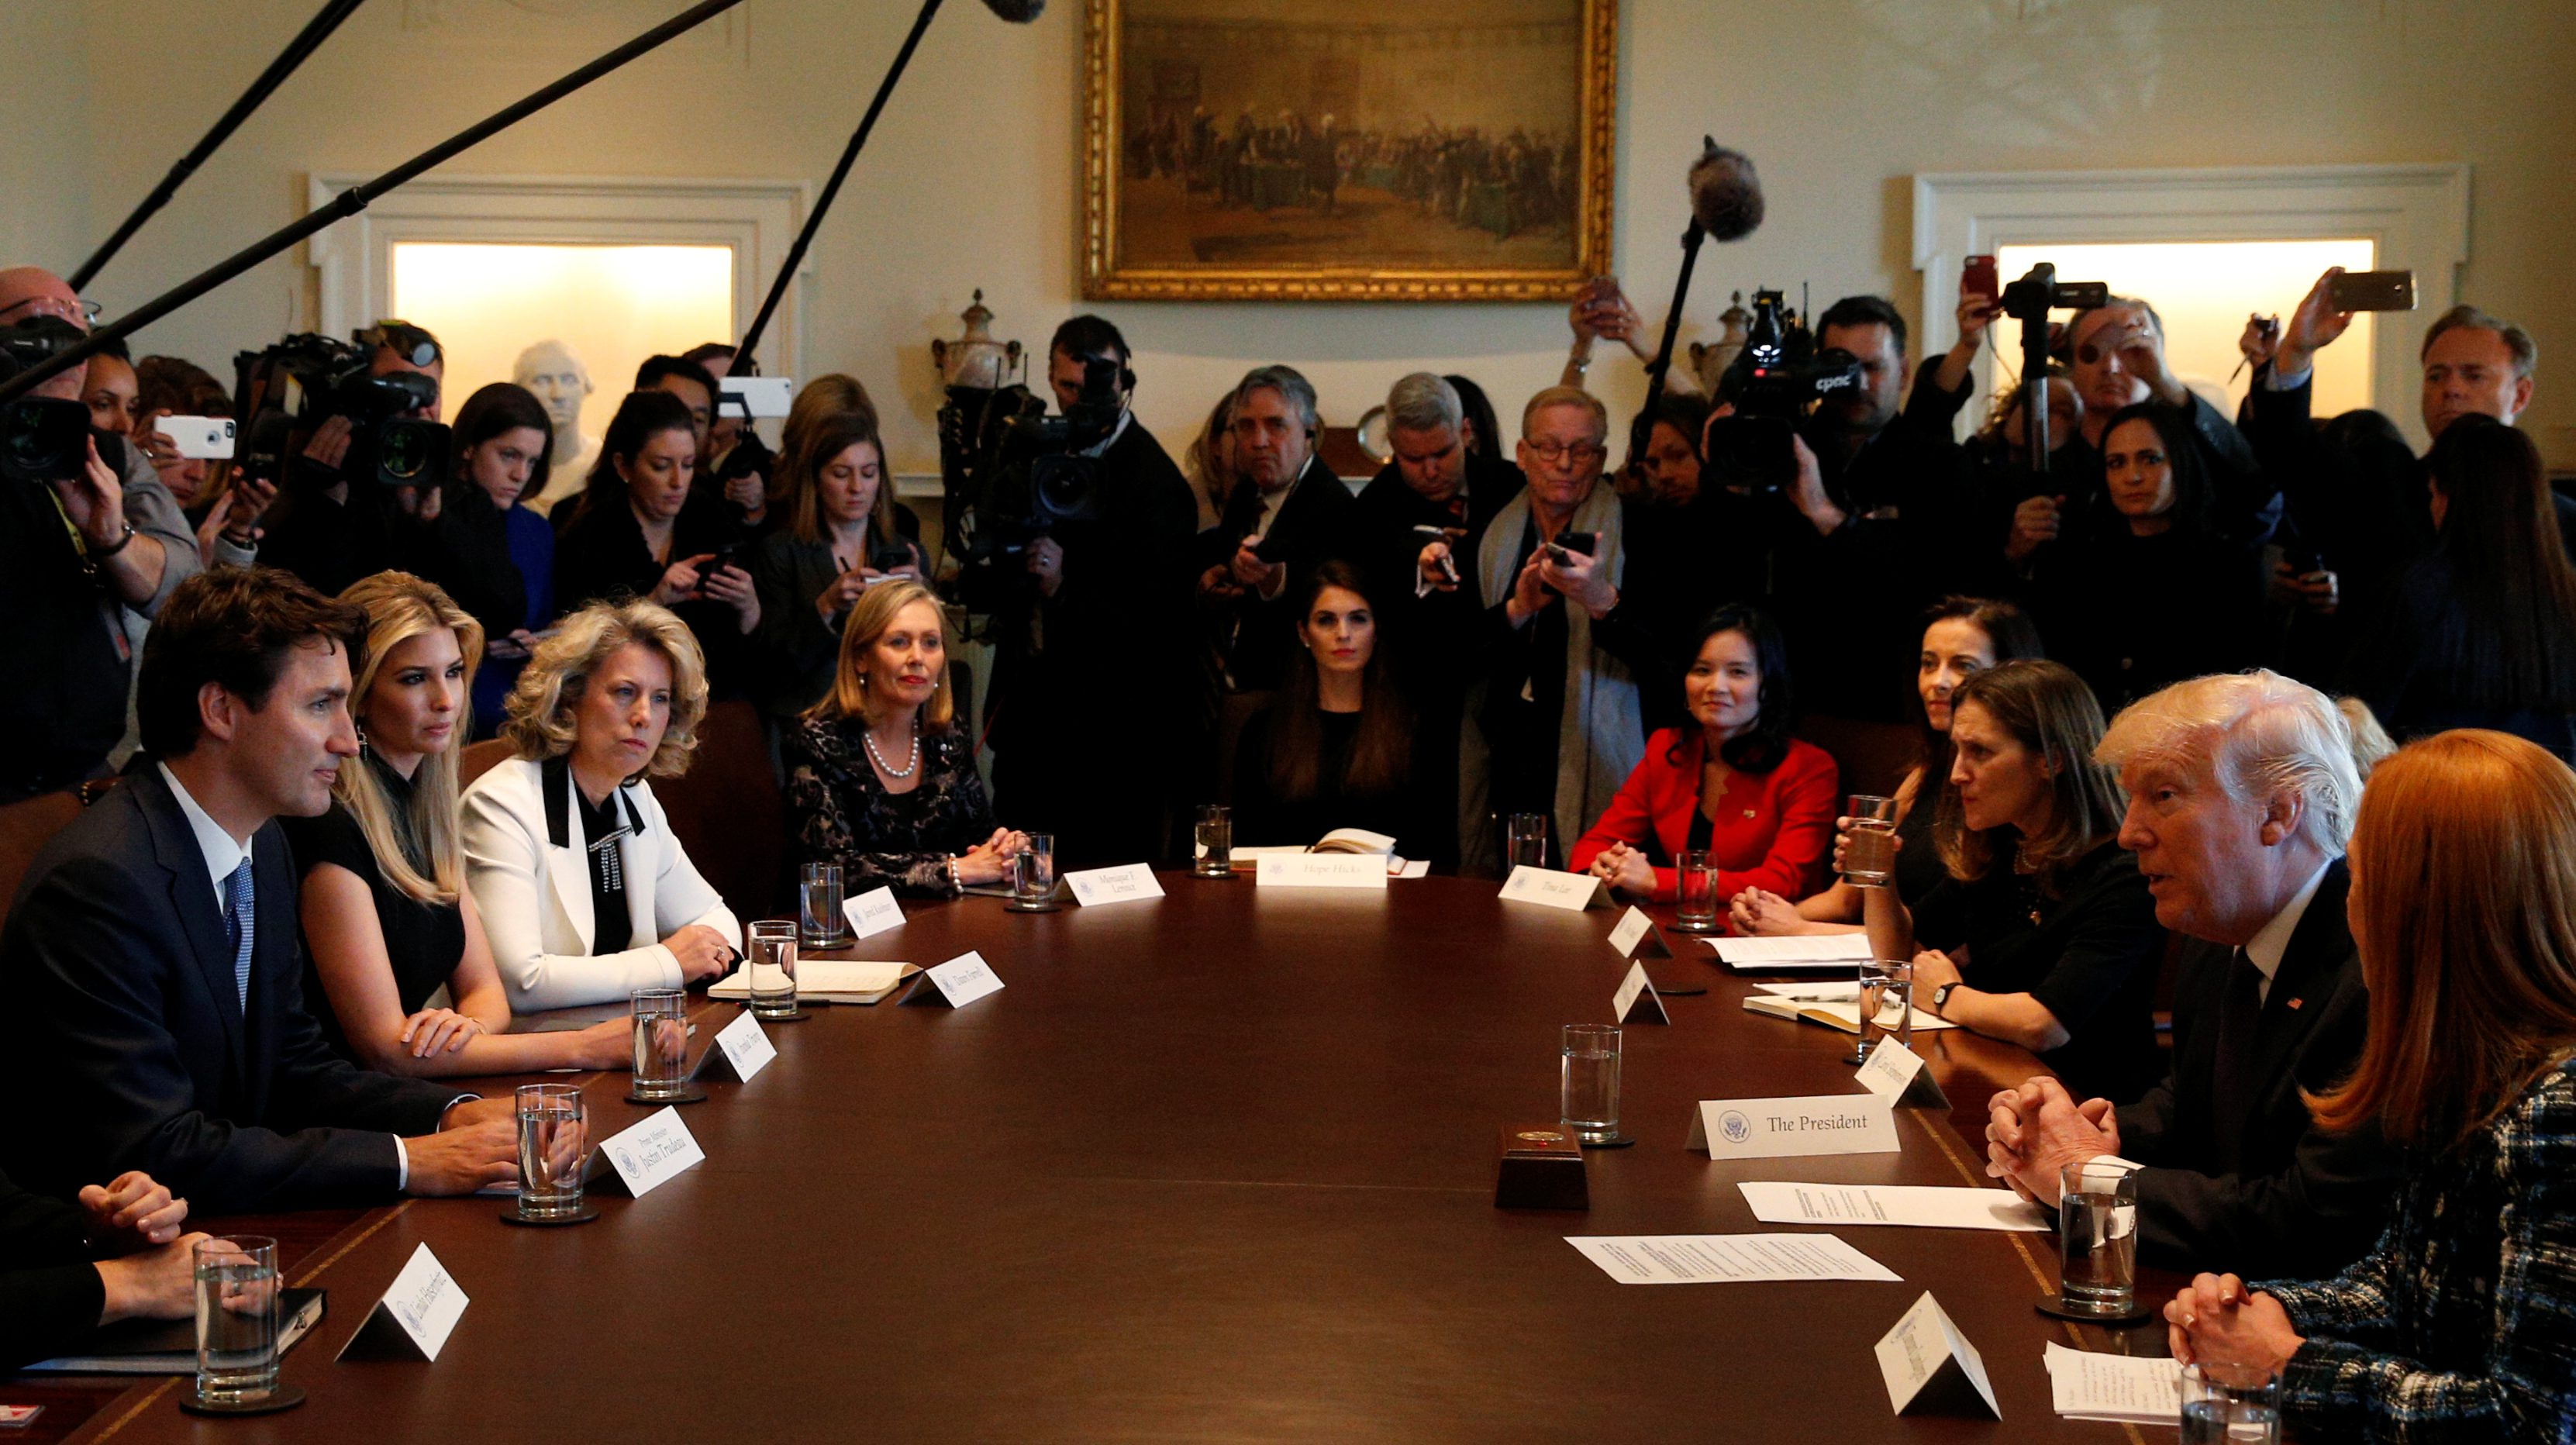 Business leaders, Ivanka Trump and Canadian Prime Minister Justin Trudeau  take part in U.S. President Donald Trump's roundtable discussion on the advancement of women entrepreneurs and business leaders at the White House.